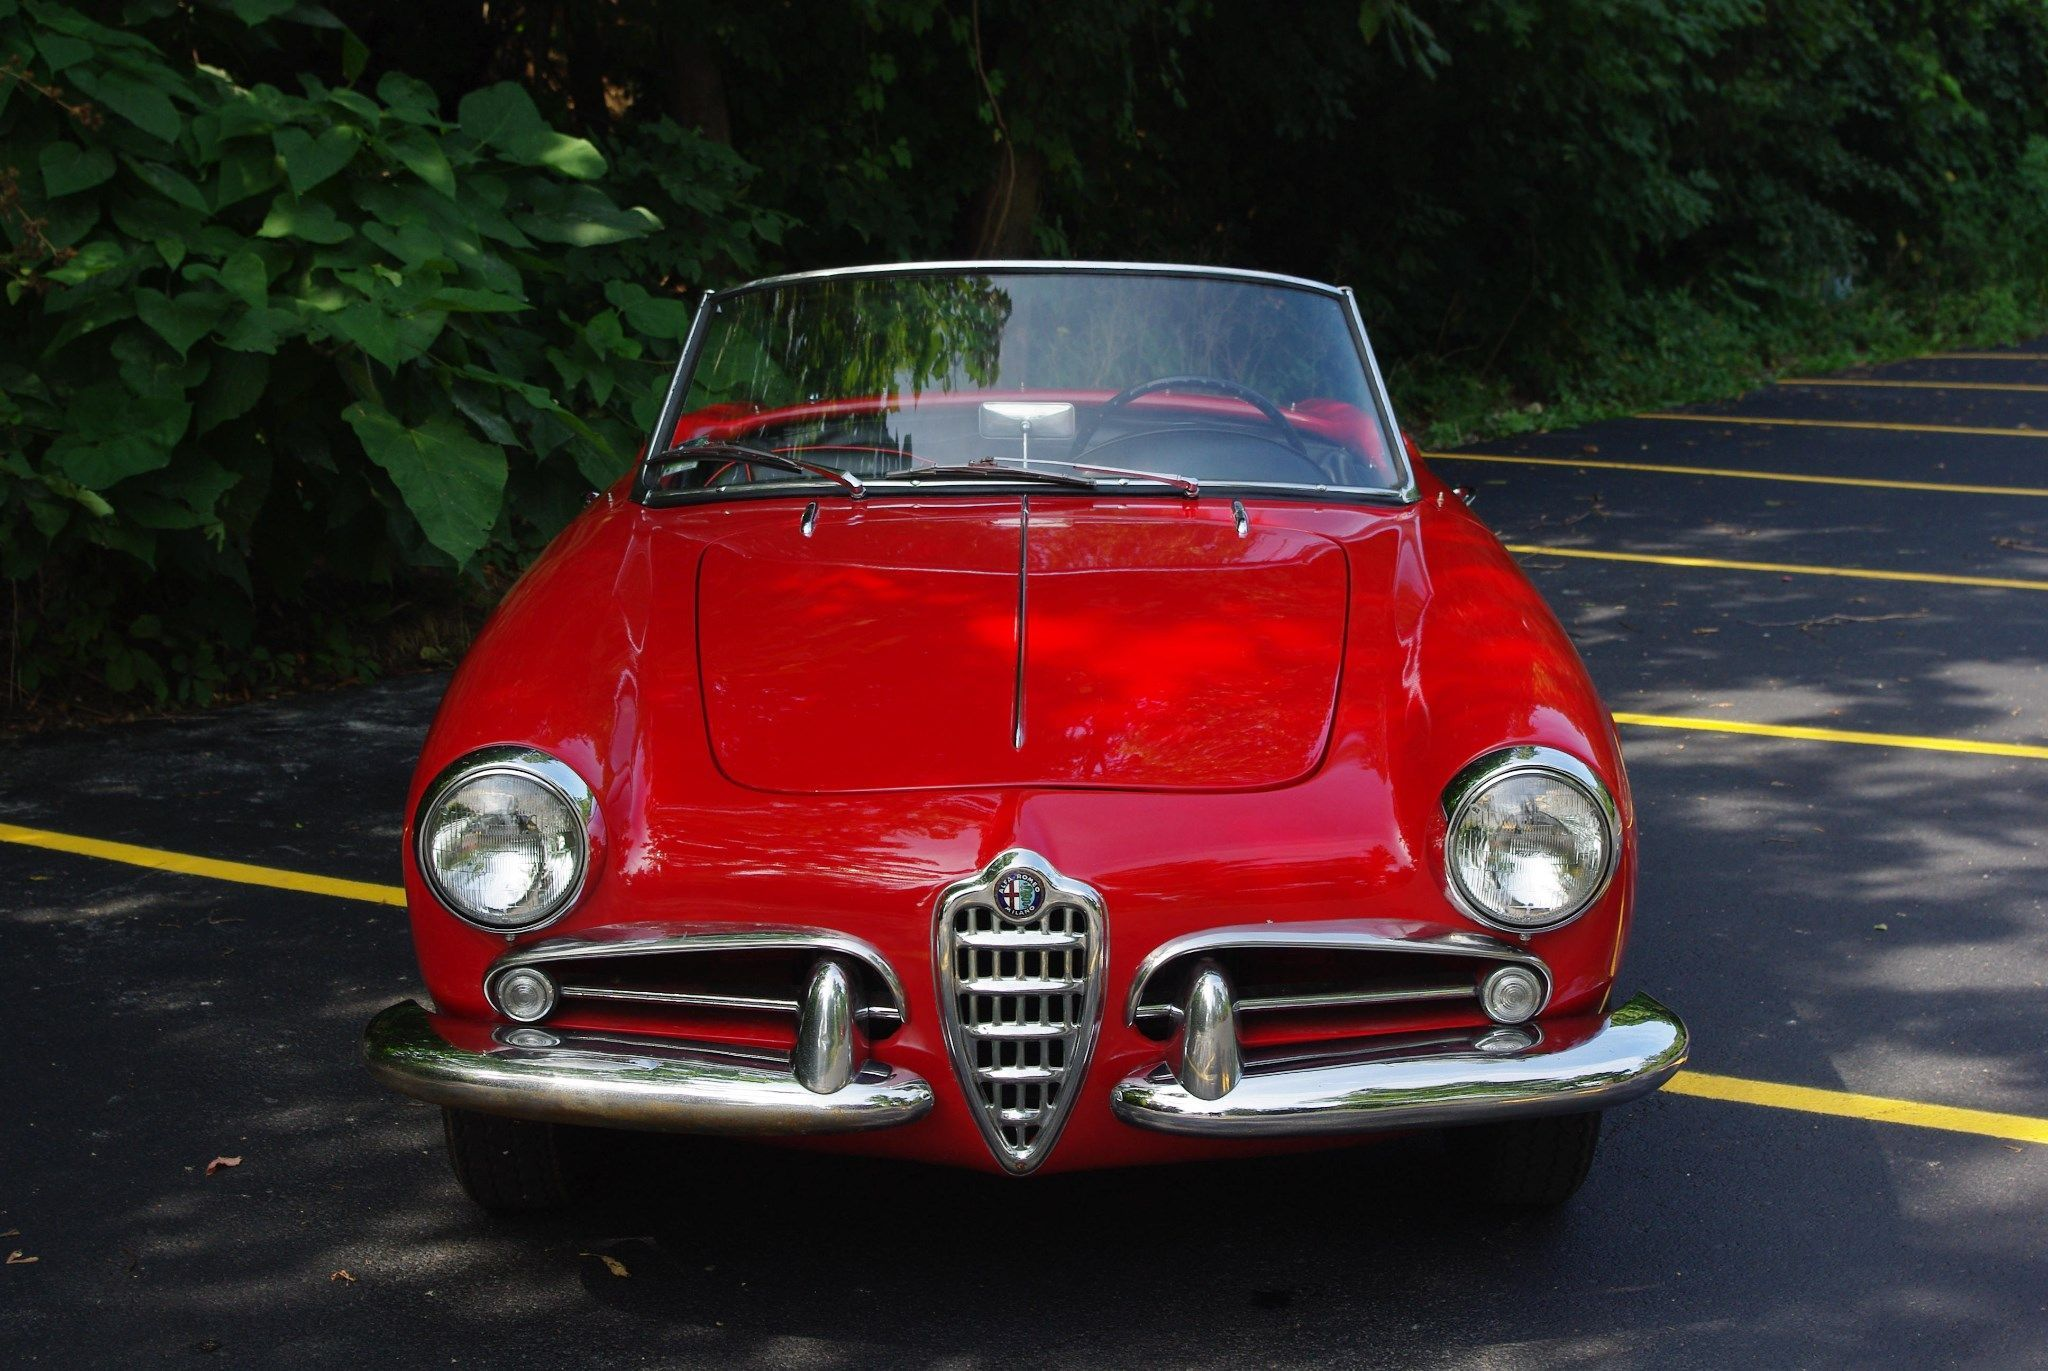 1957 Alfa Romeo Giulietta Spider 750d Was Acquired From The Son Of